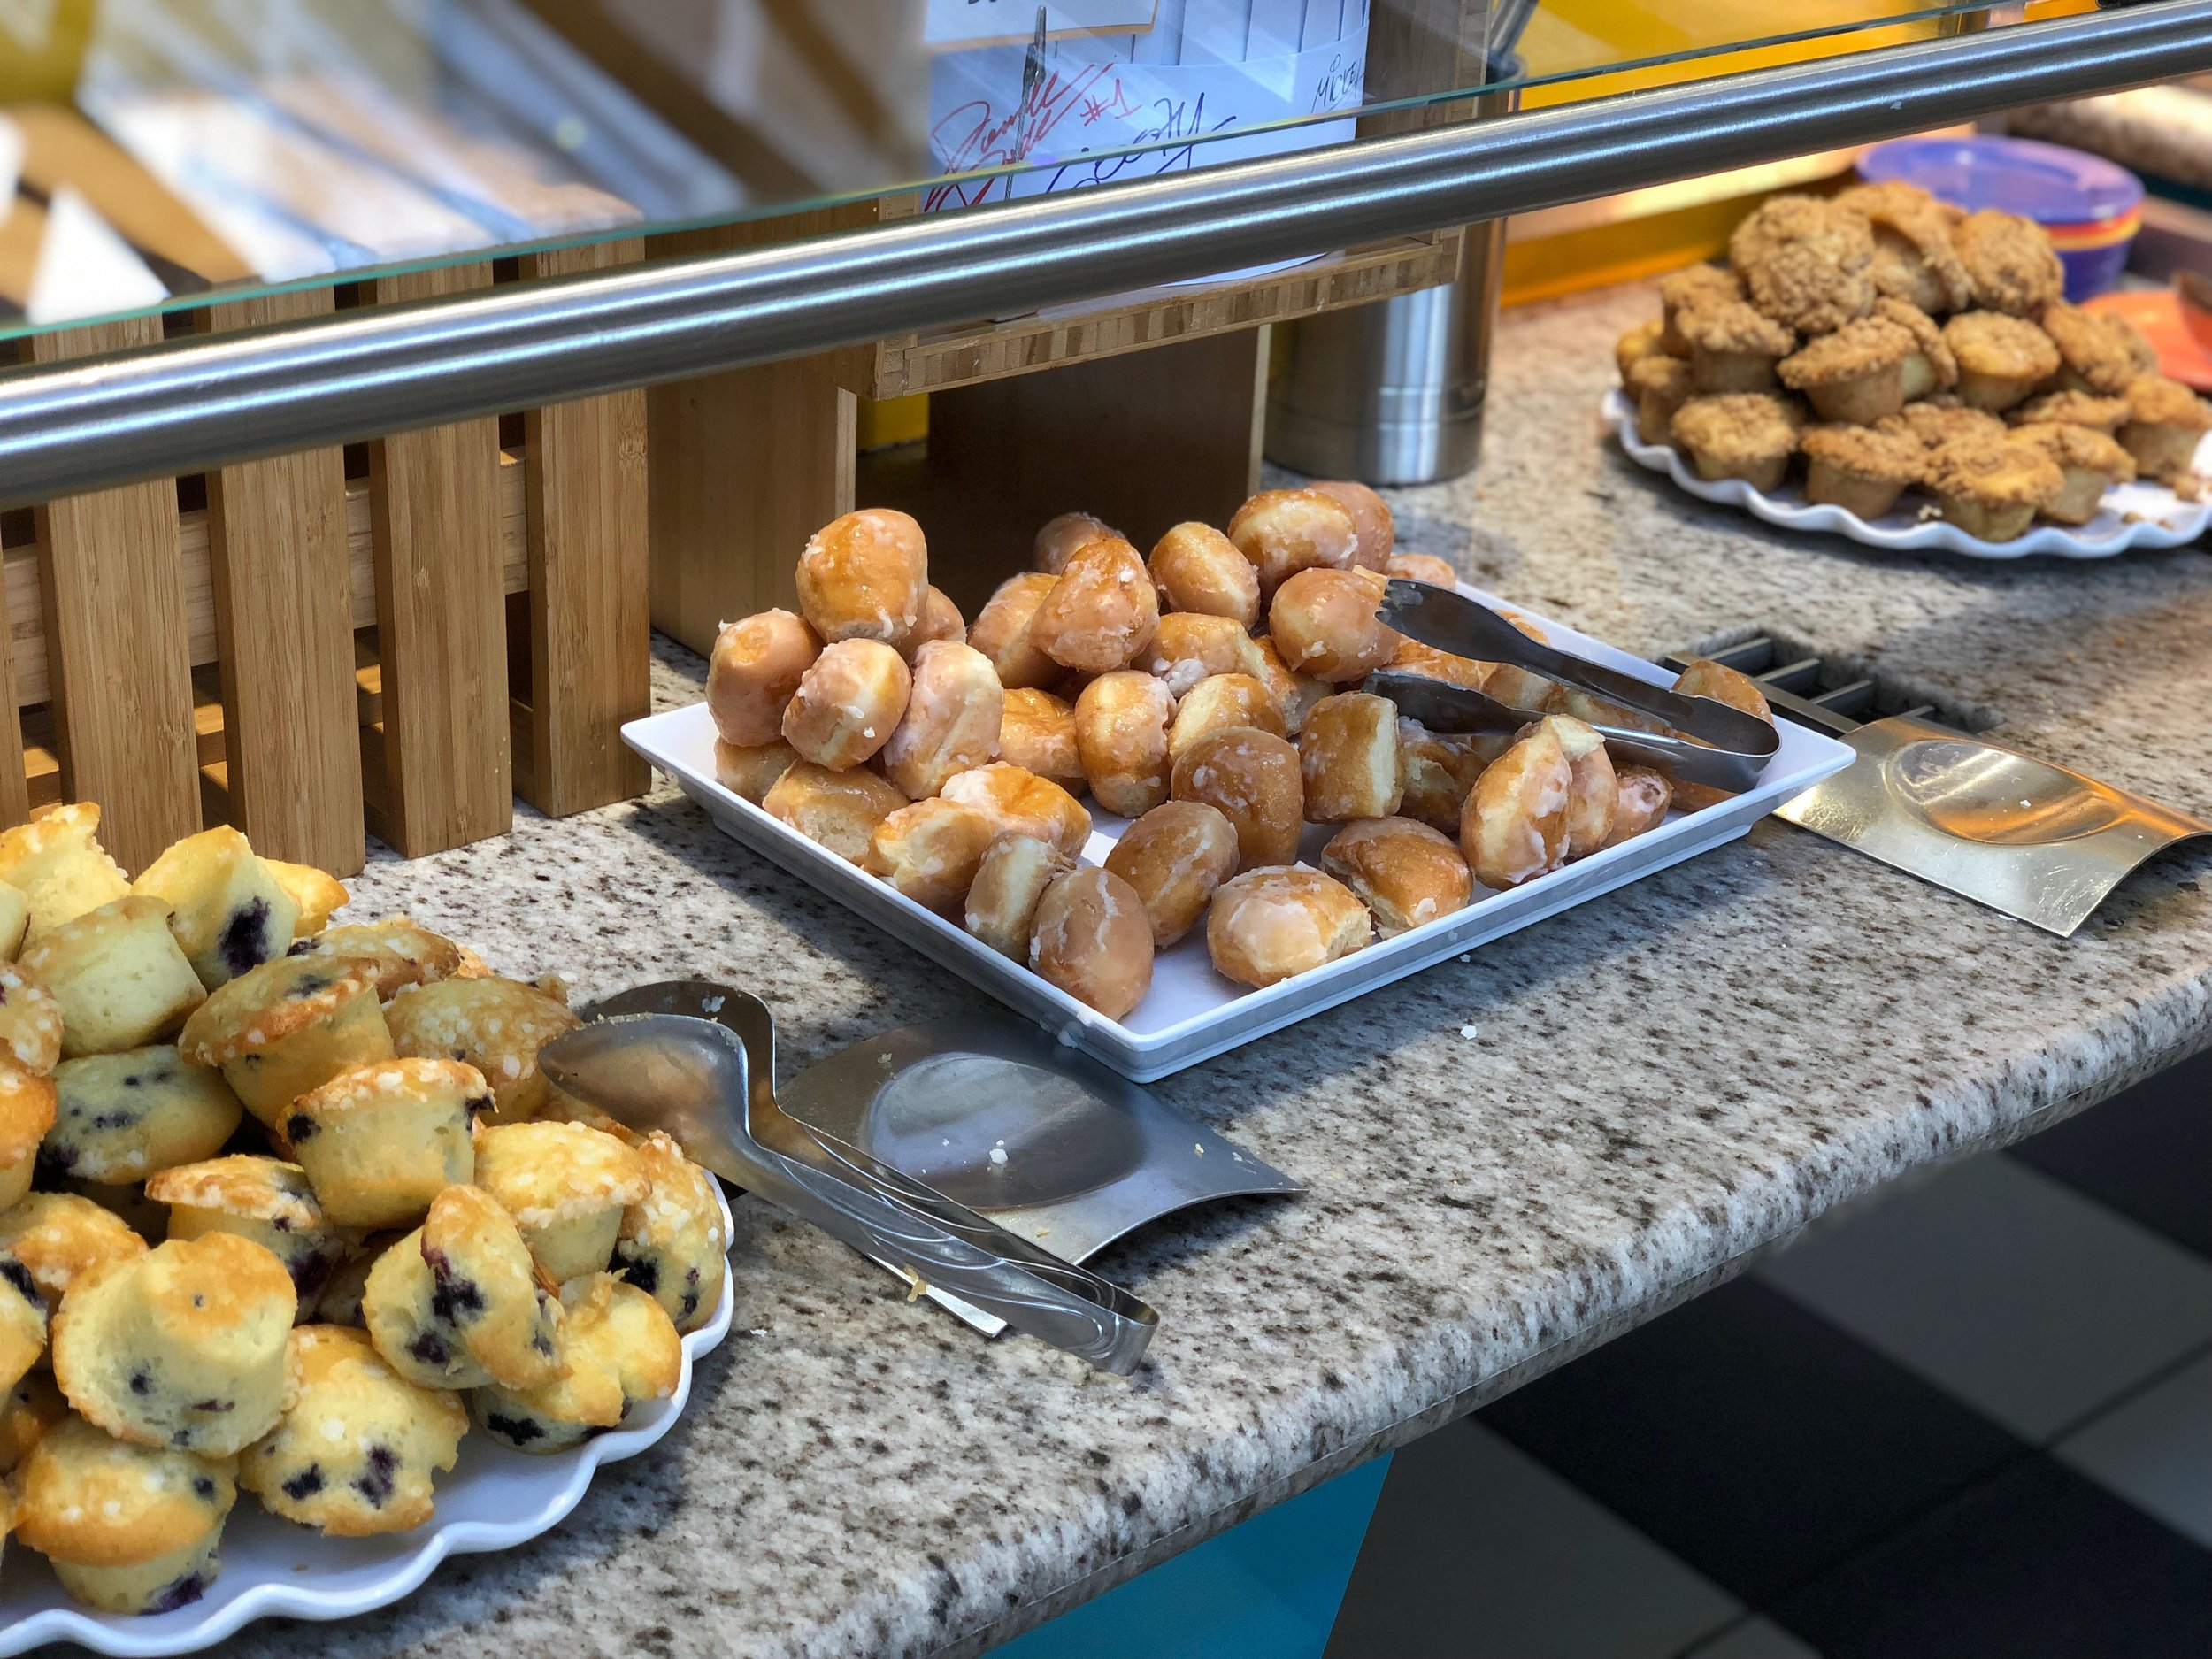 Muffins and Doughnuts - Chef Mickey's